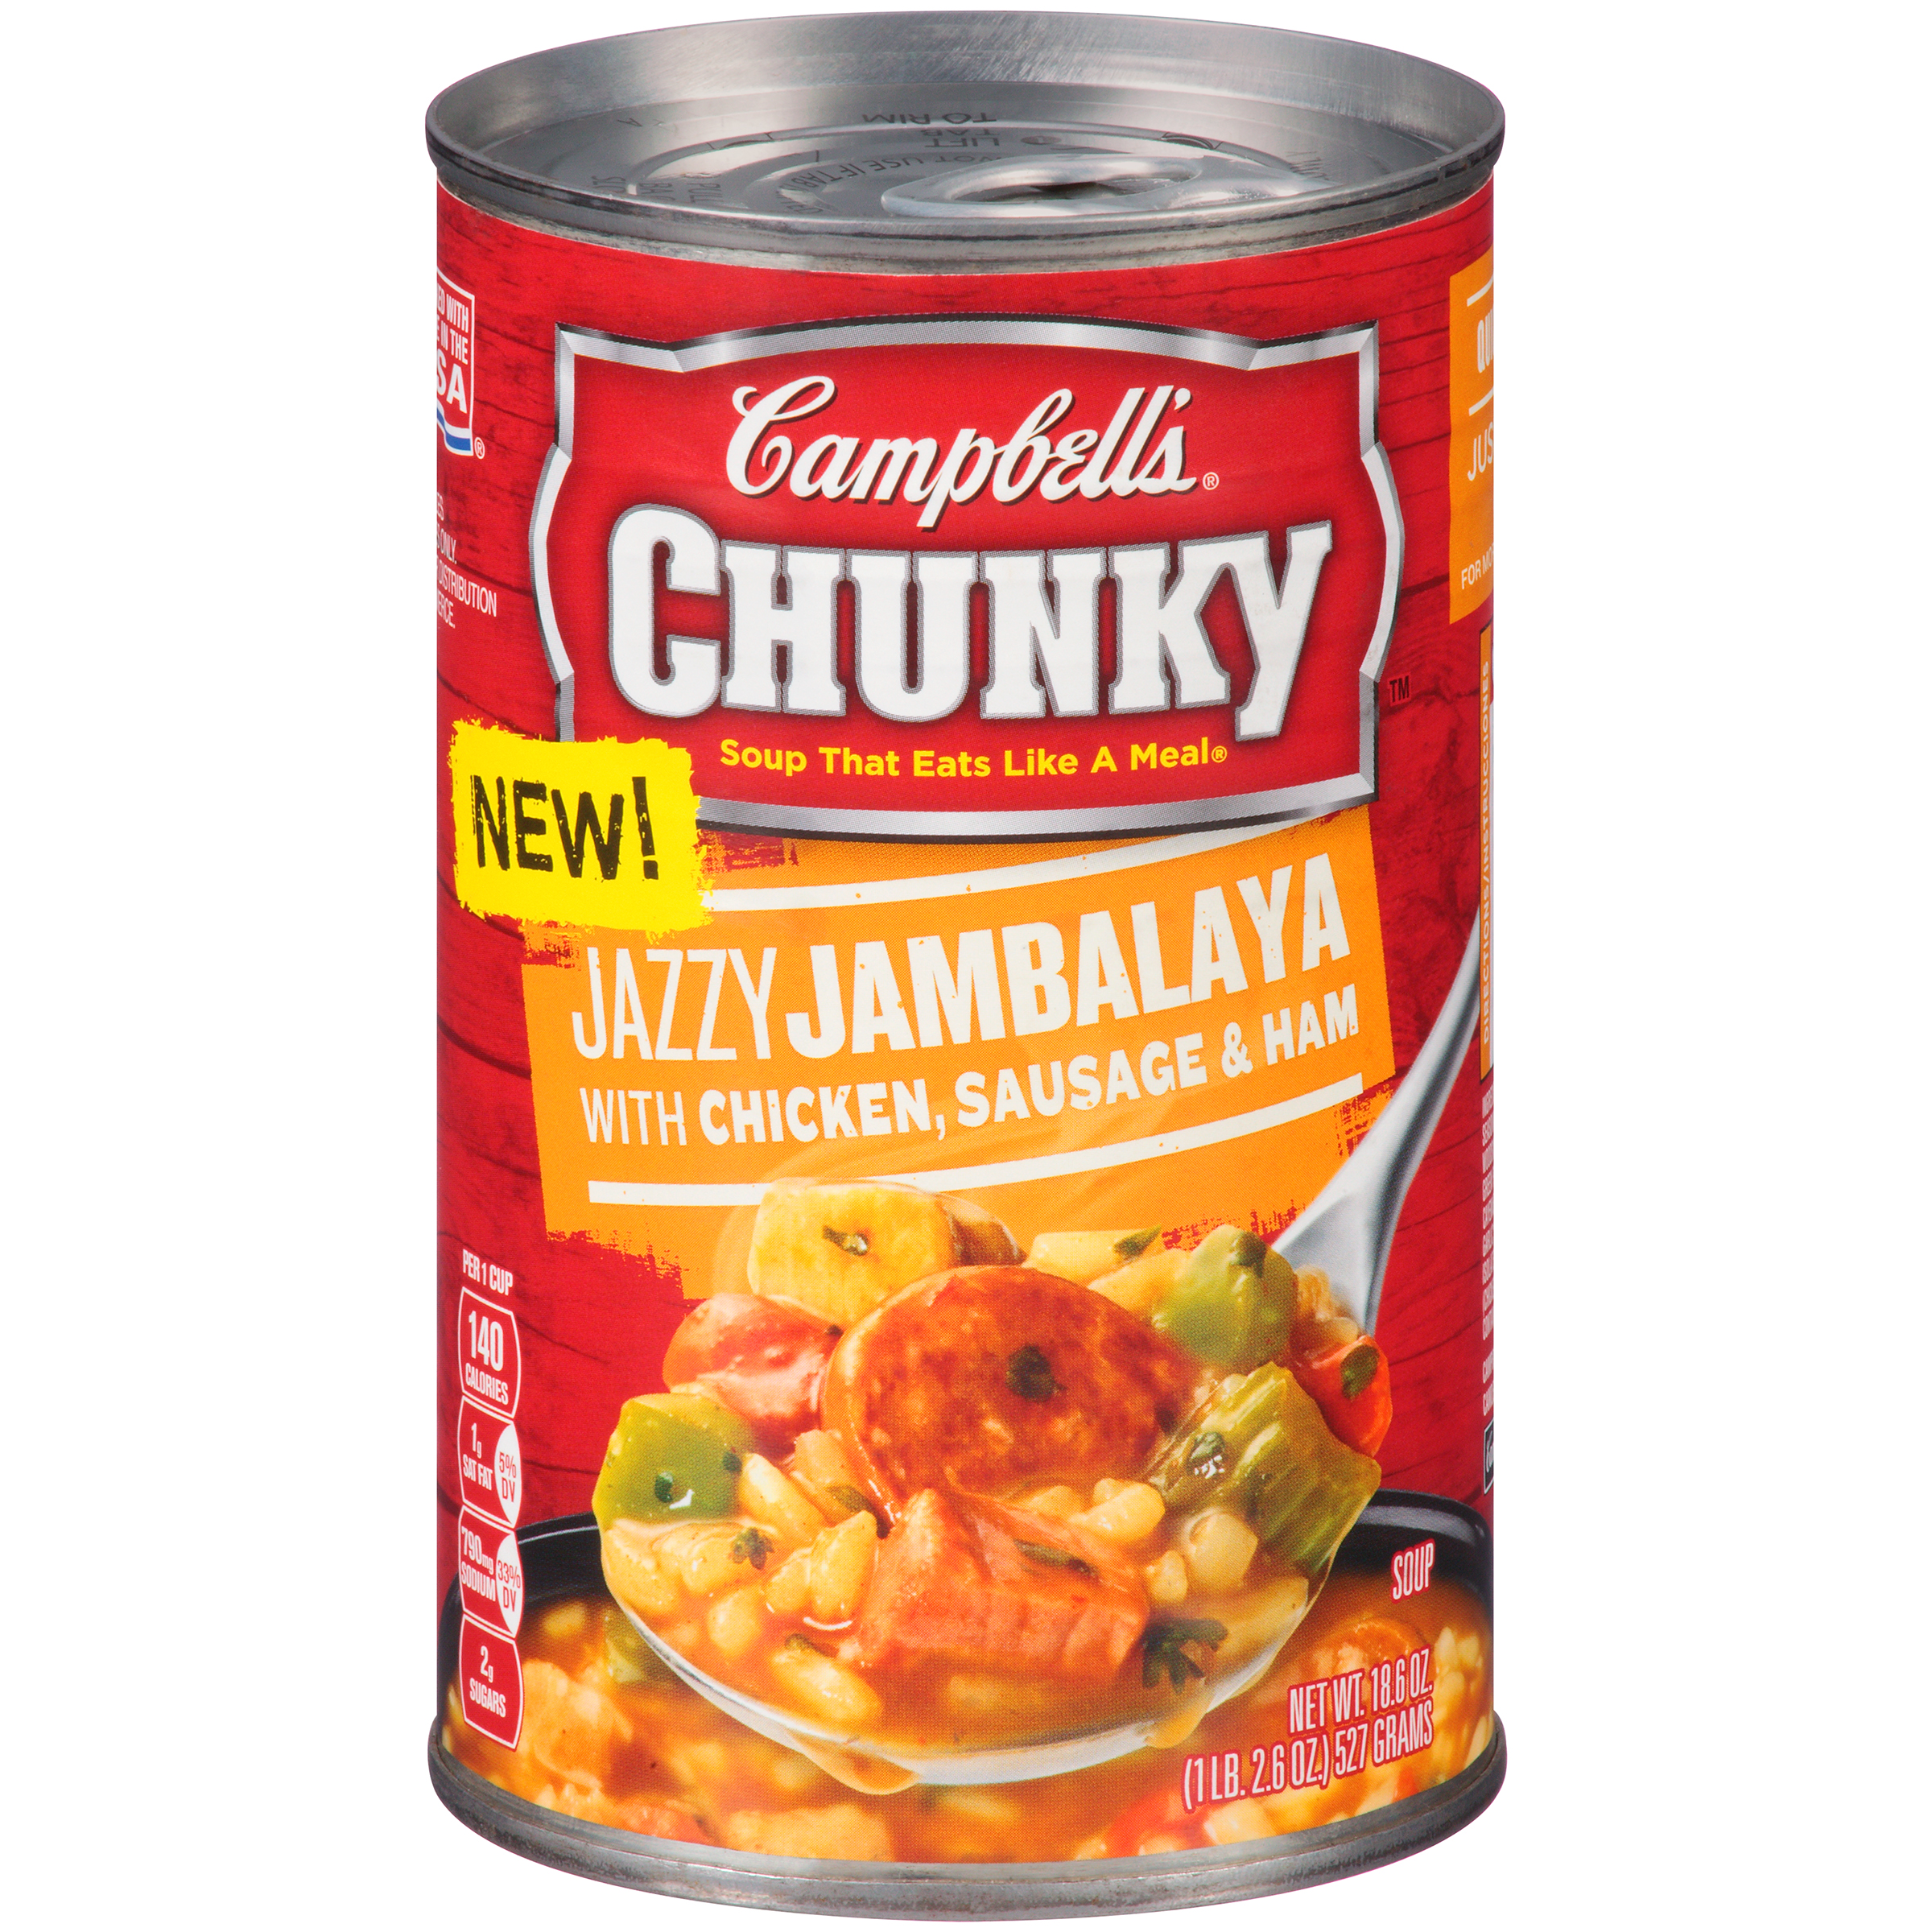 Campbell's Chunky Jazzy Jambalaya with Chicken, Sausage & Ham Soup 18.6oz